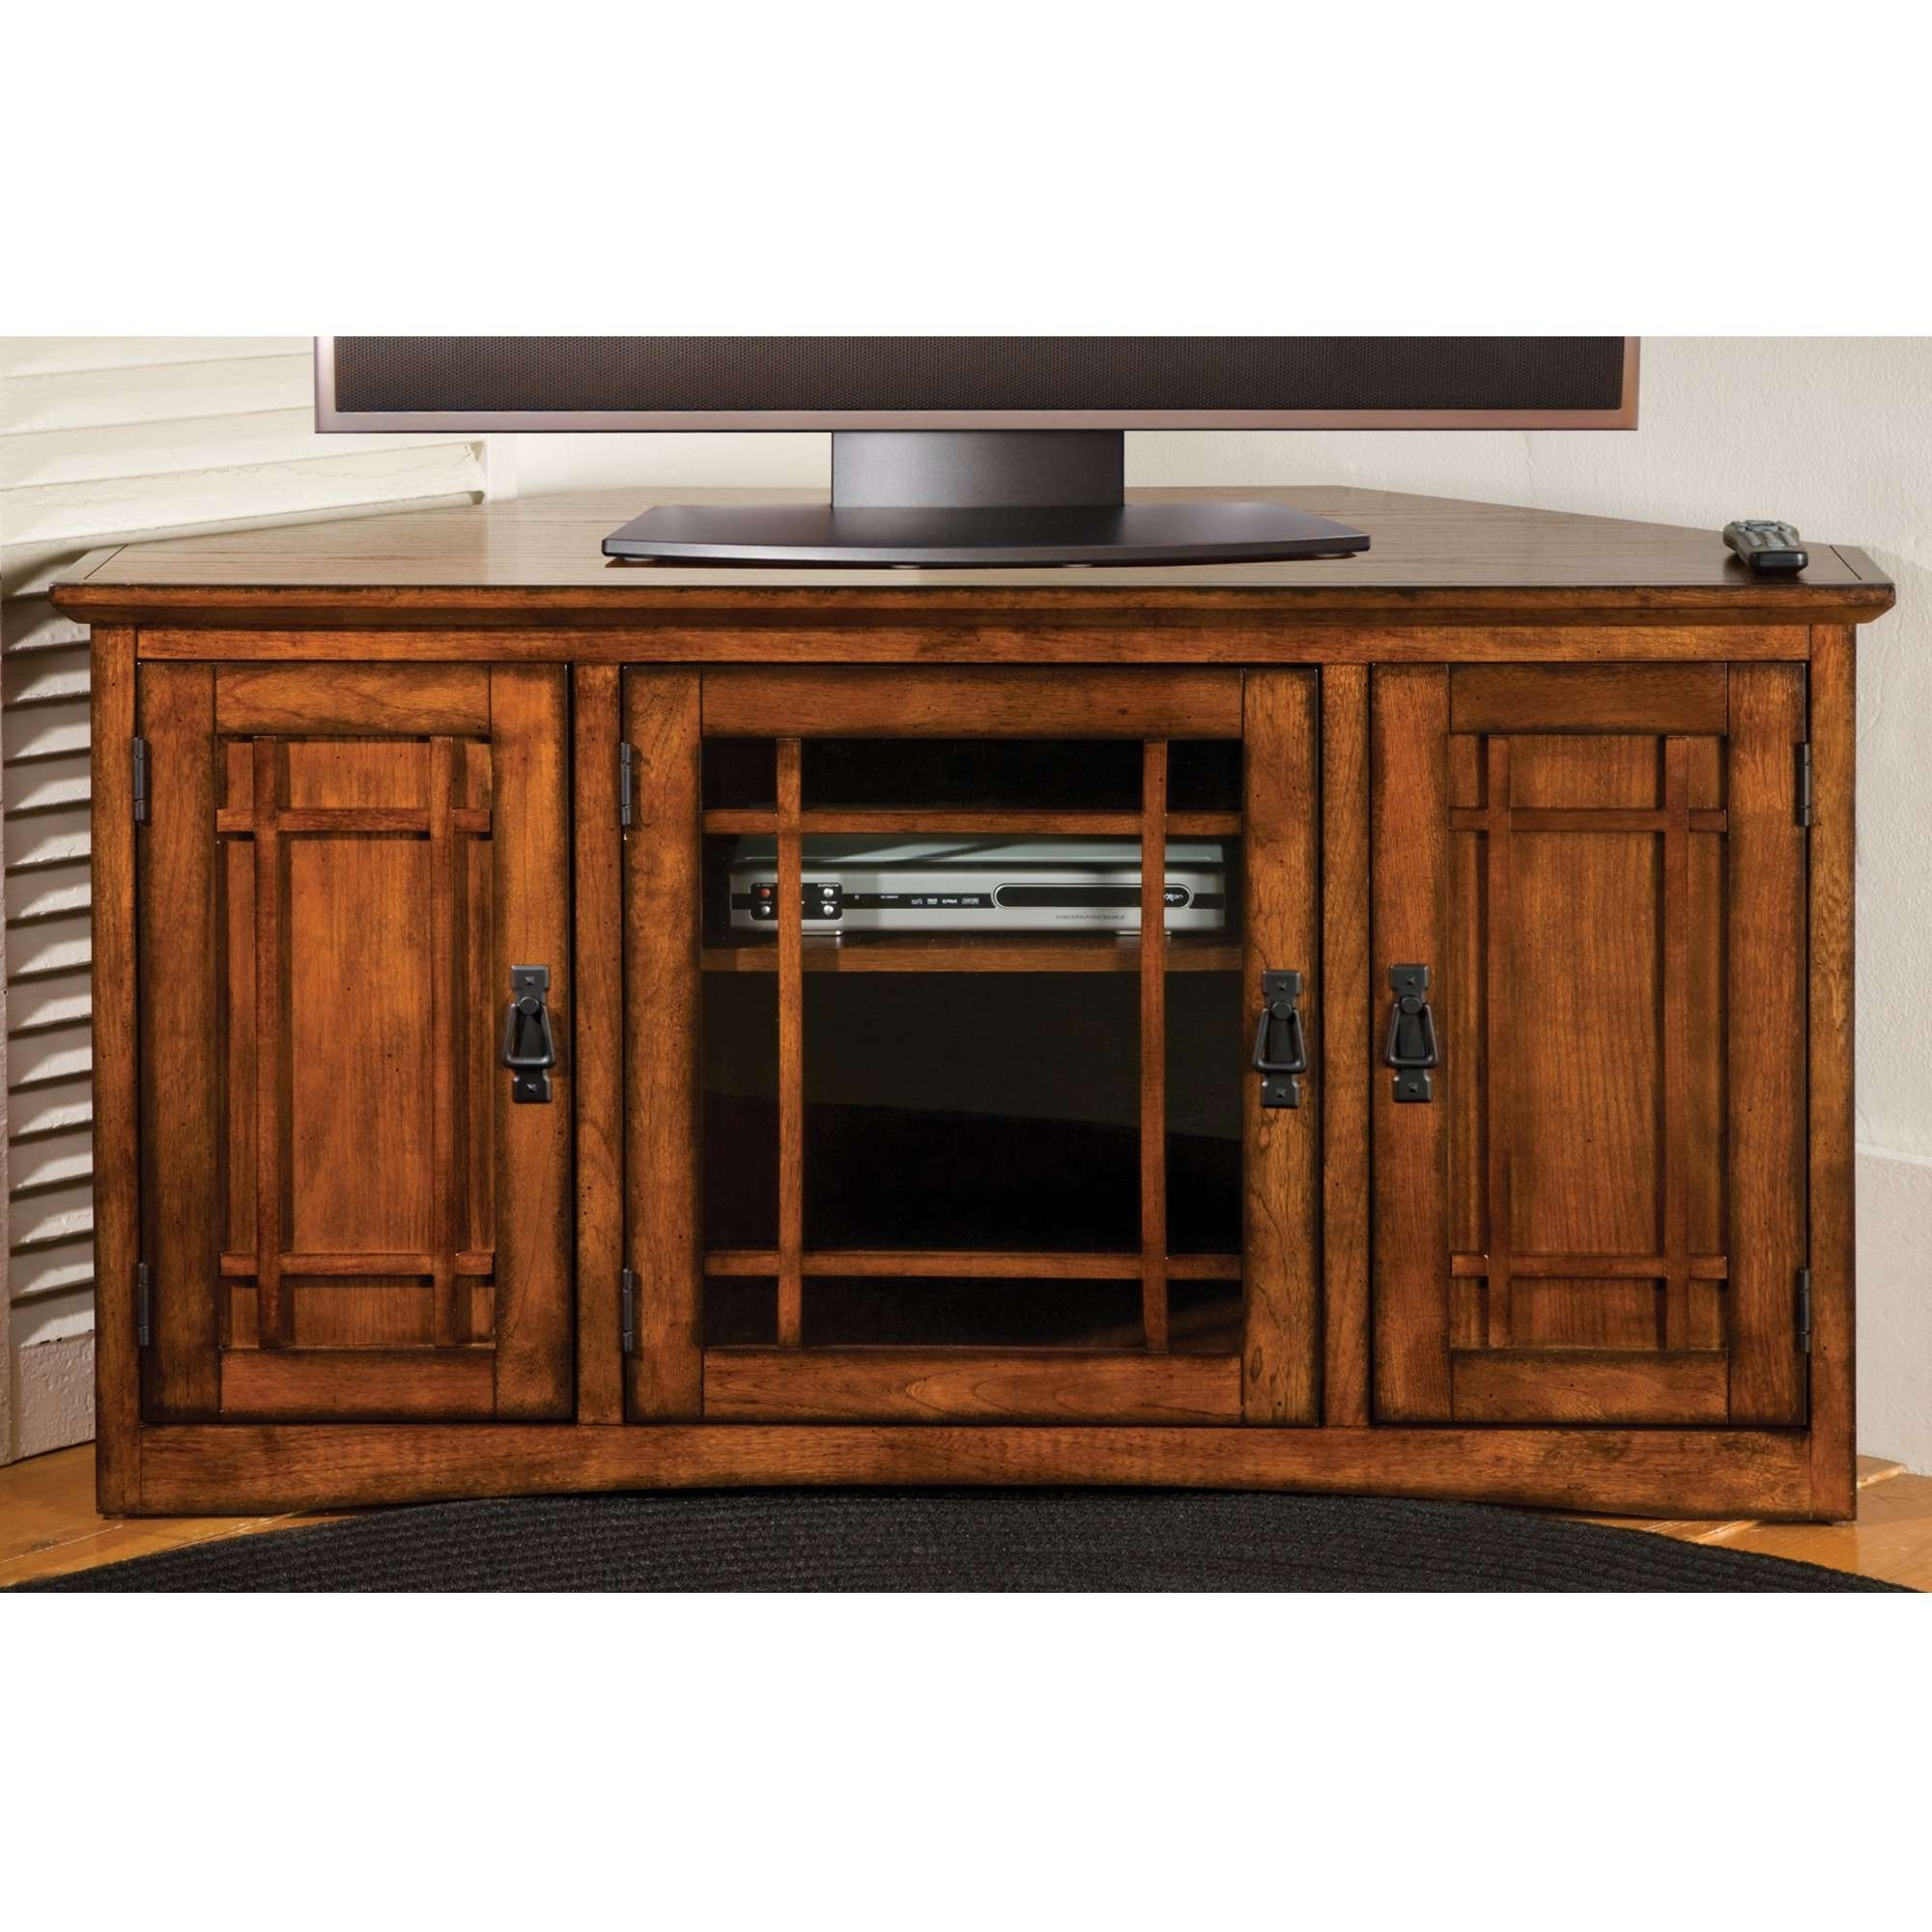 Mission Corner Tv Cabinet | Sturbridge Yankee Workshop In Corner Tv Cabinets With Hutch (View 17 of 20)